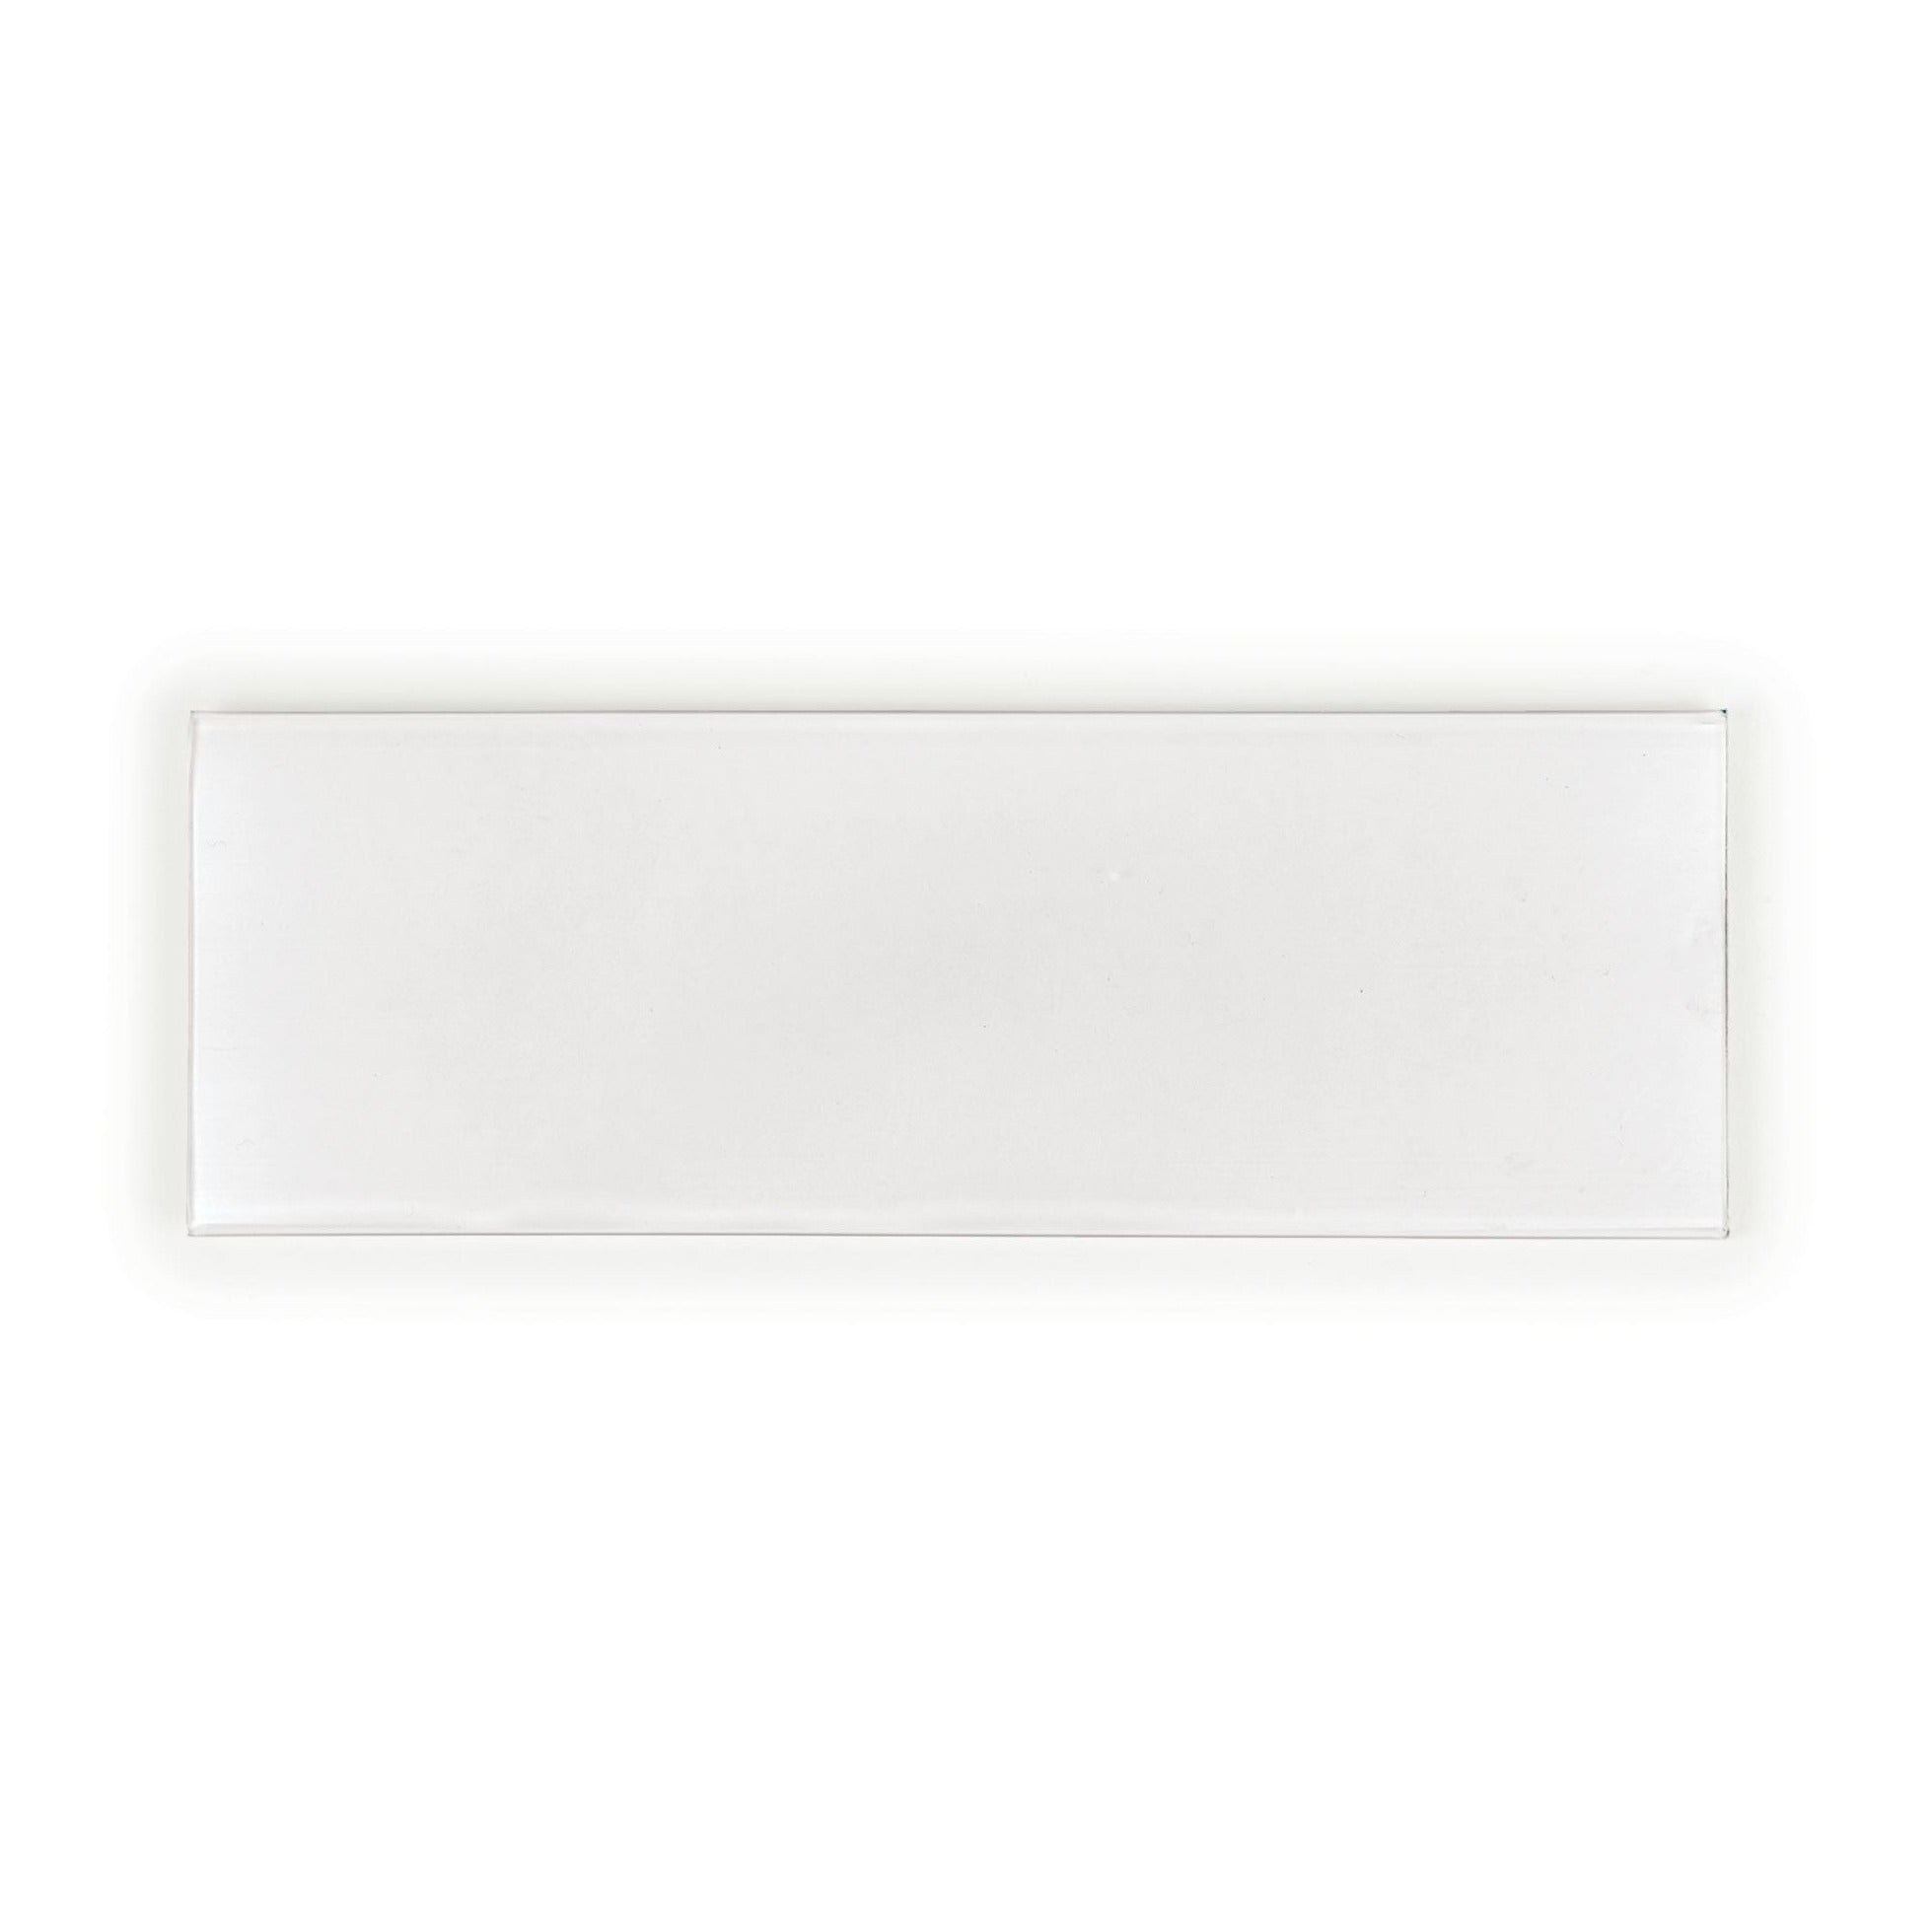 "Self-Adhesive Hol-Dex® Label Holders, 2"" x 6"", 12pk"